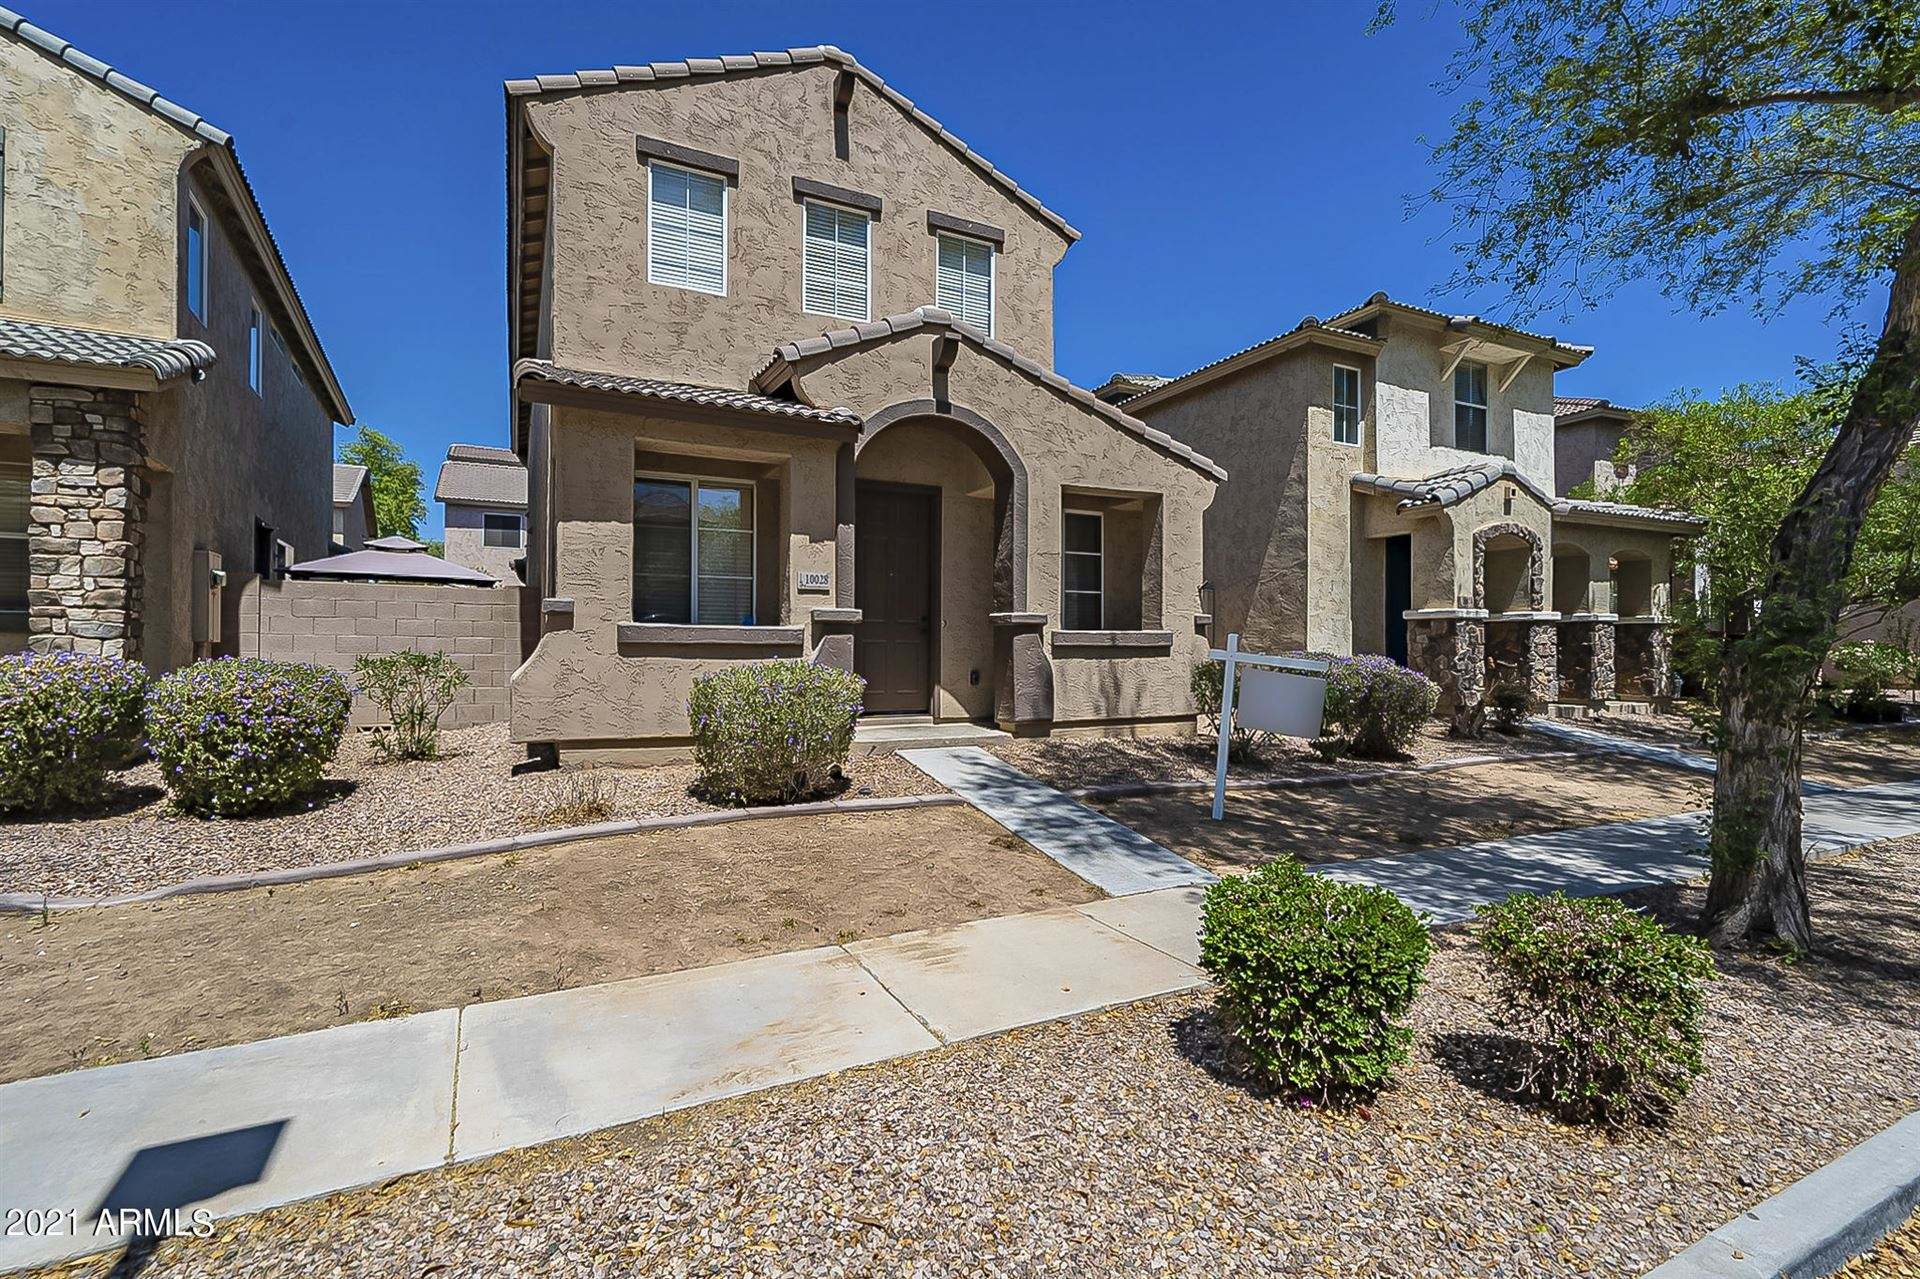 Photo of 10028 W KINGMAN Street, Tolleson, AZ 85353 (MLS # 6227753)